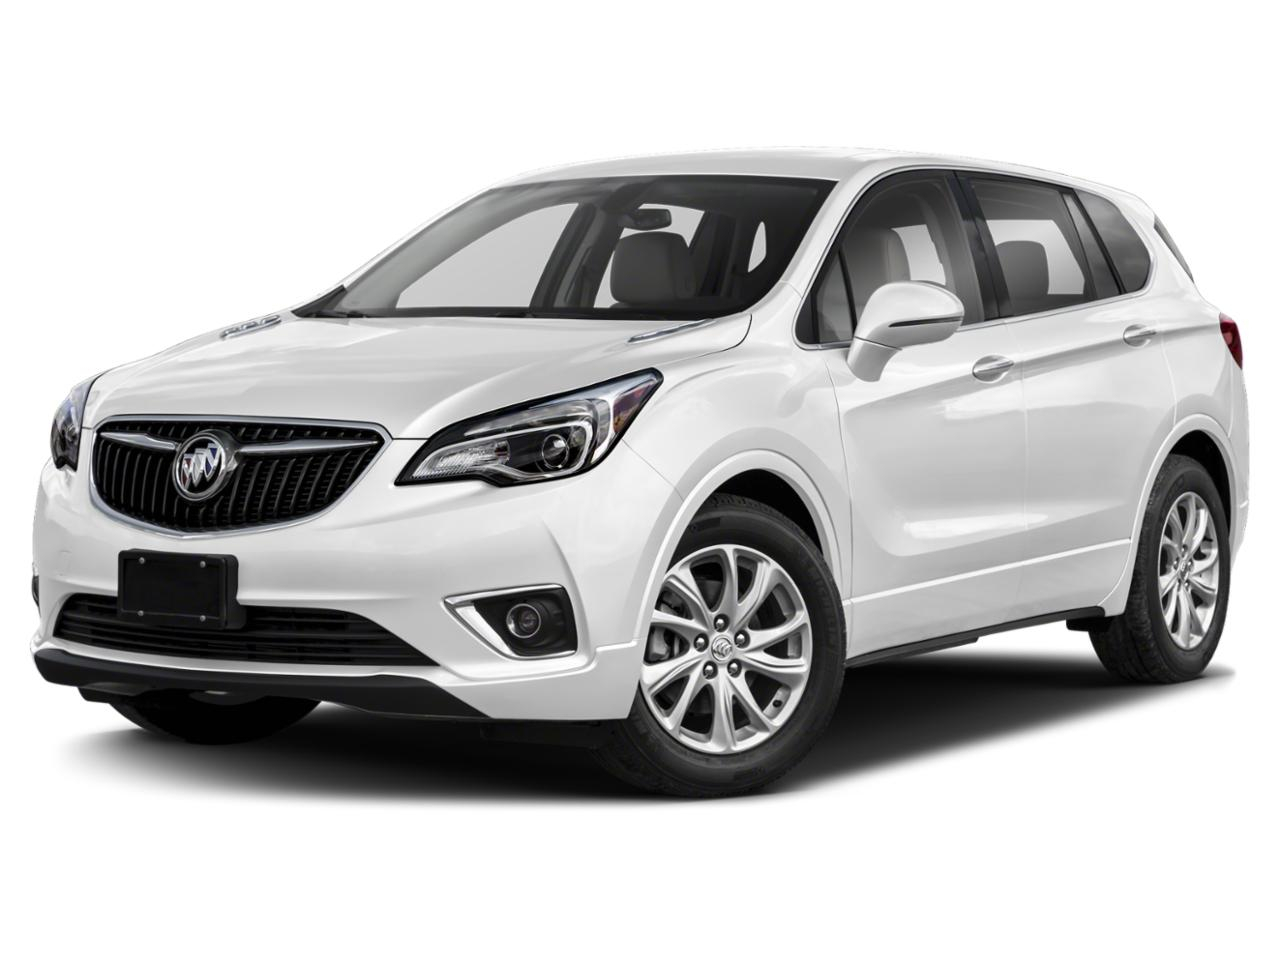 New 2020 Buick Envision Awd 4Dr Premium 2021 Buick Envision Accessories, Awd, Build And Price